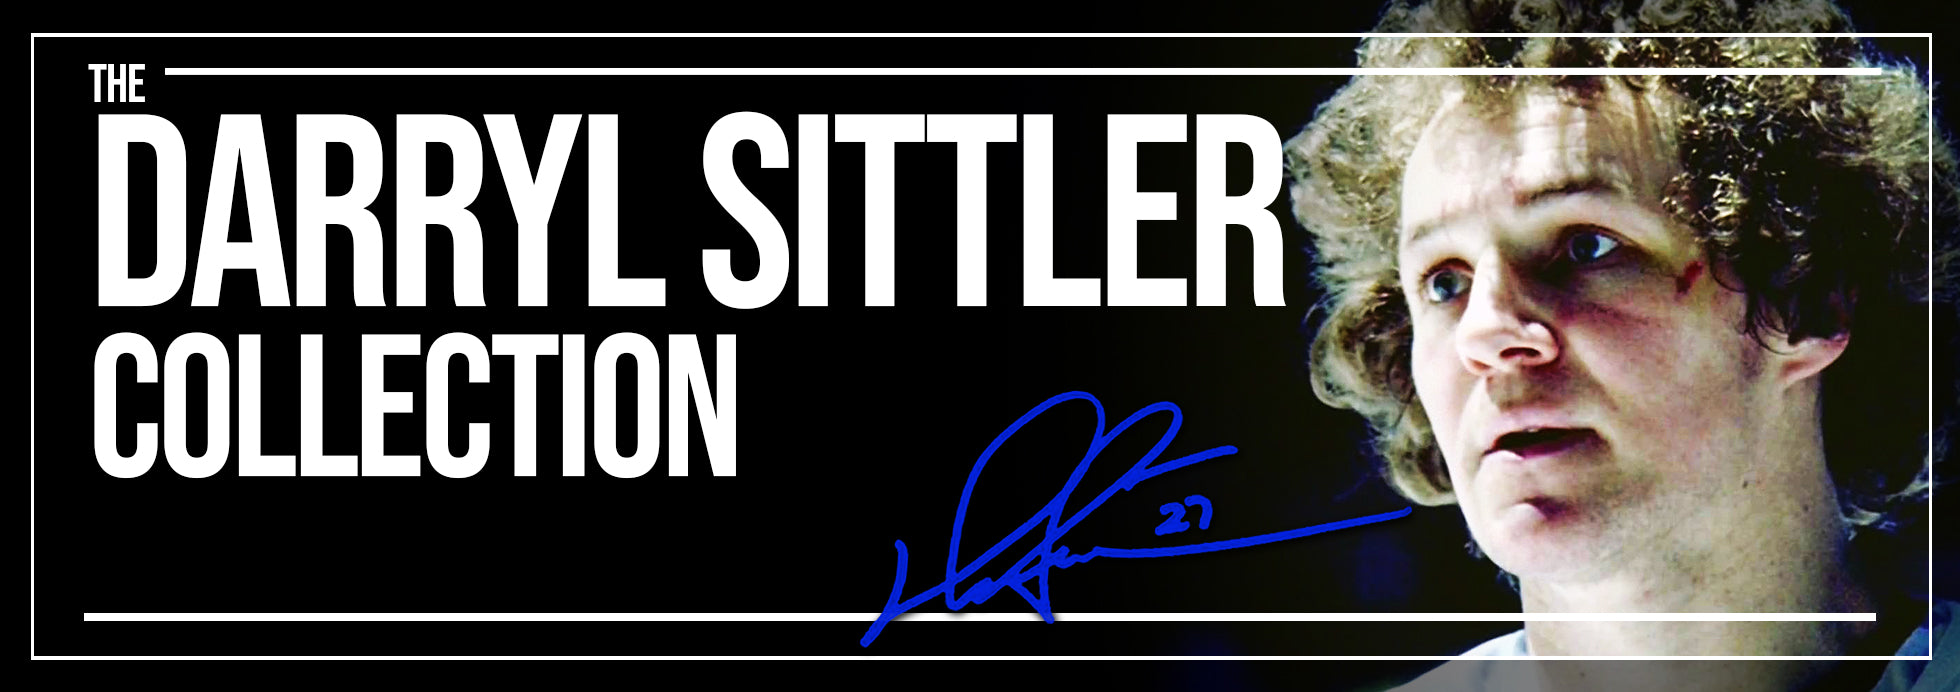 Darryl Sittler Collection Banner